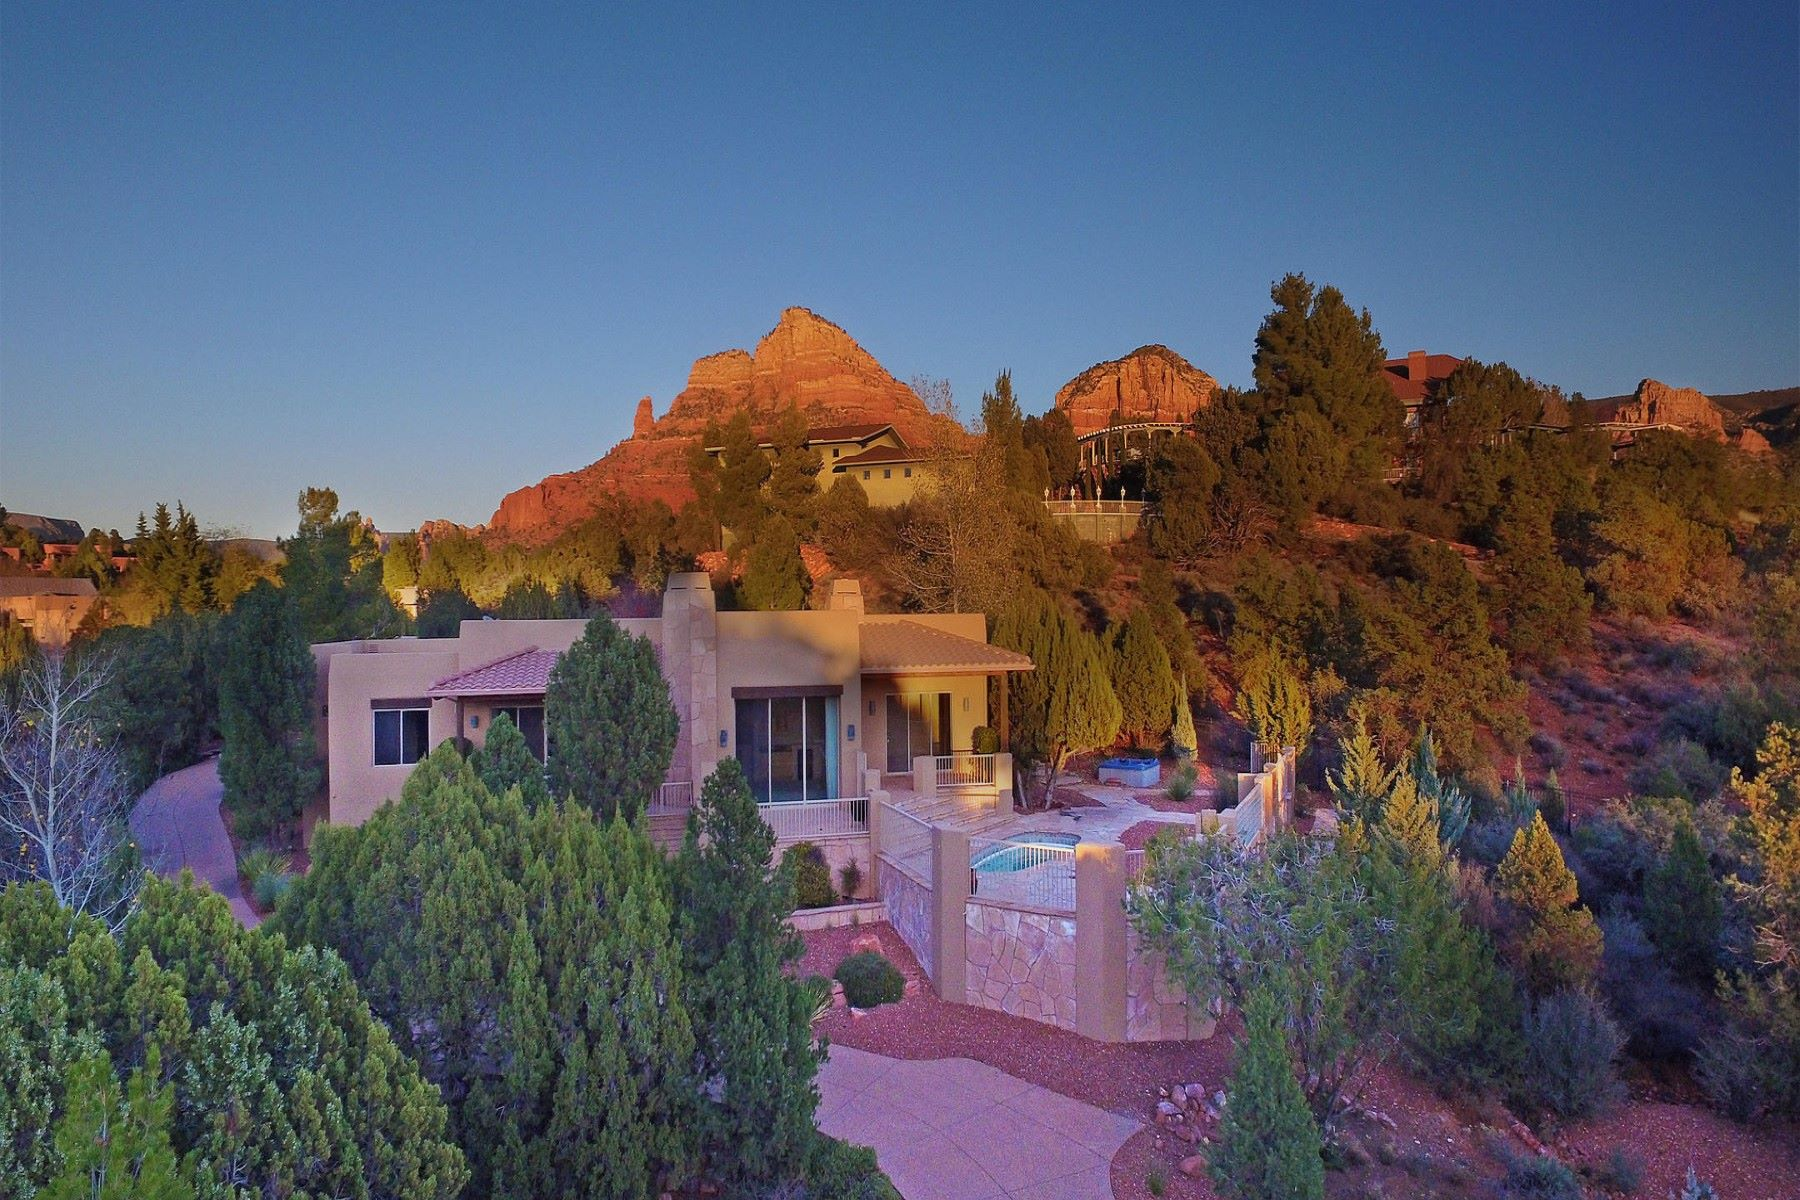 Single Family Home for Sale at Gorgeous home with captivating views 45 Scenic Drive Sedona, Arizona, 86336 United States